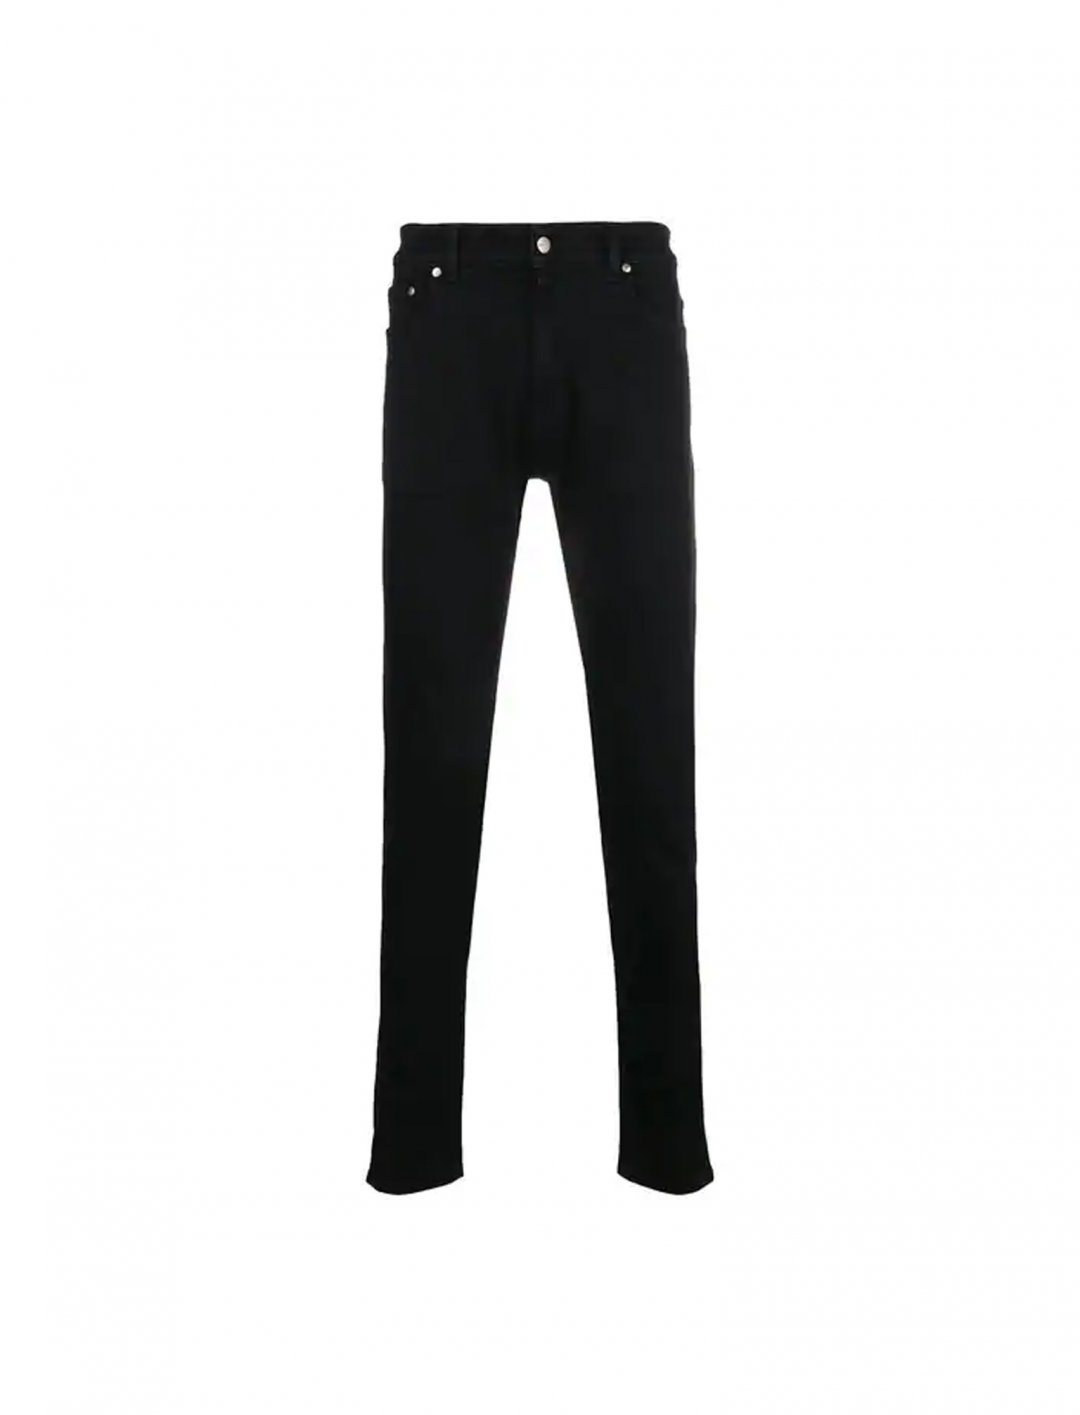 "Lotto Boyzz' Jeans In Black {""id"":5,""product_section_id"":1,""name"":""Clothing"",""order"":5} Represent"